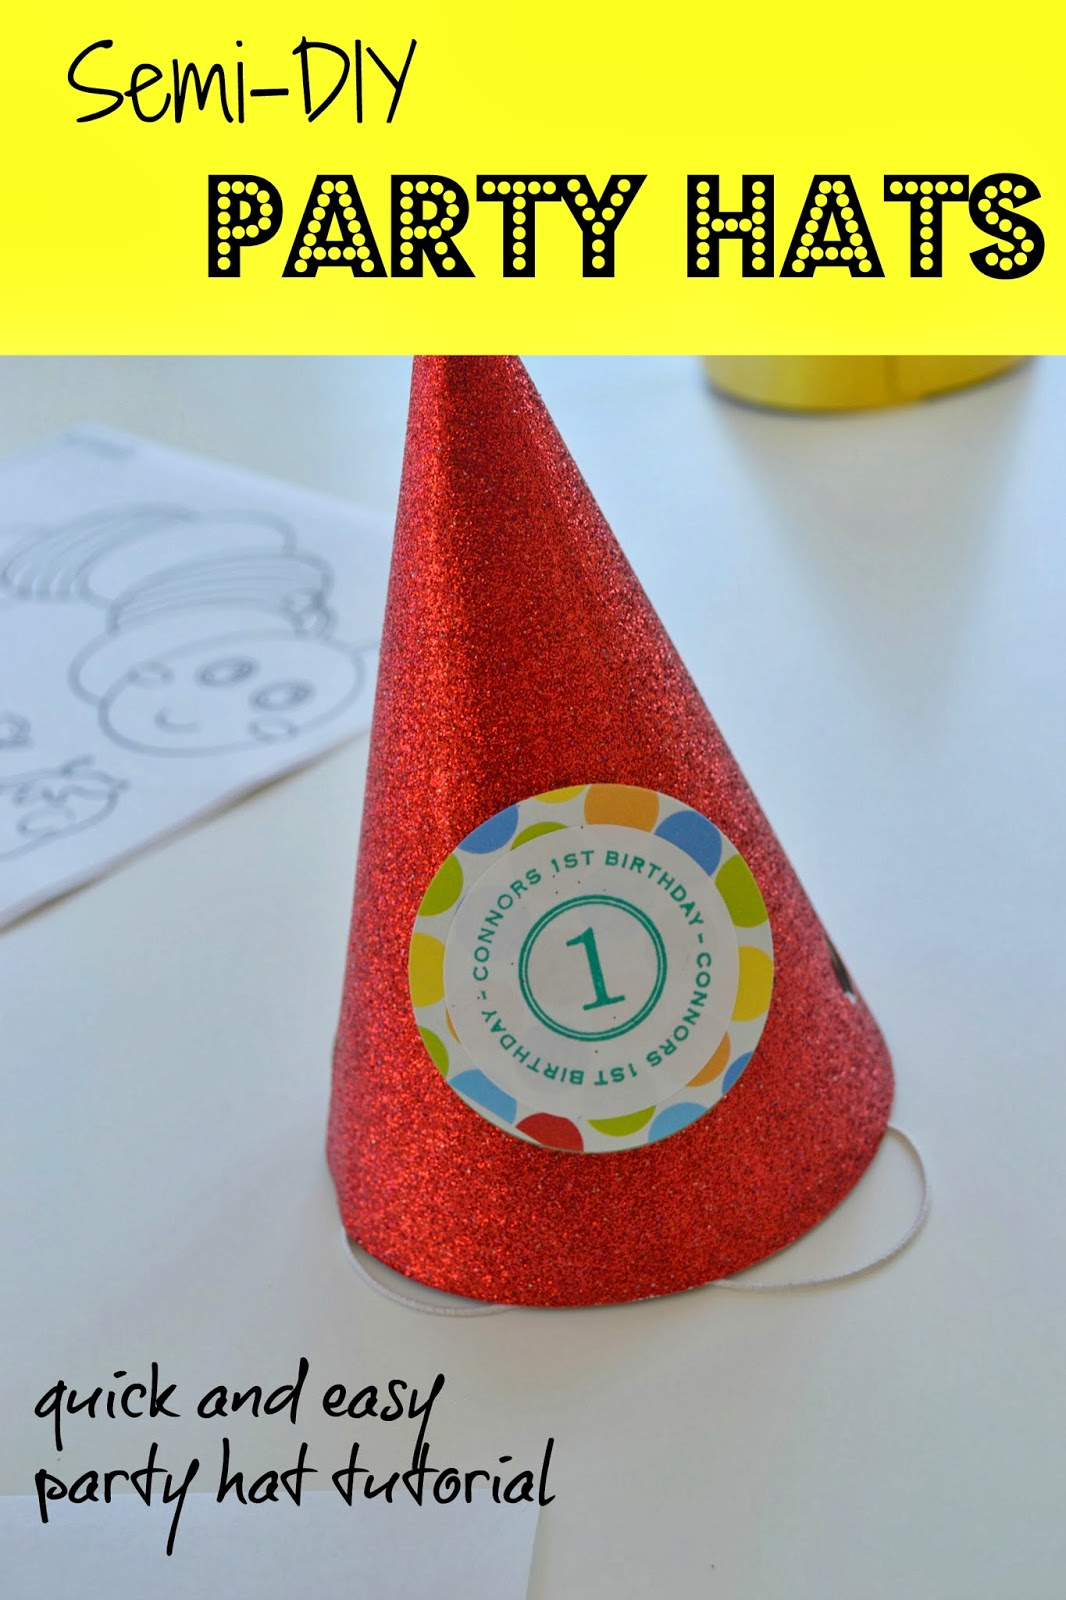 I Made These Party Hats For My Sons 1st Birthday Last Year They Were Simple Festive And Personalized Perfect The Occasion